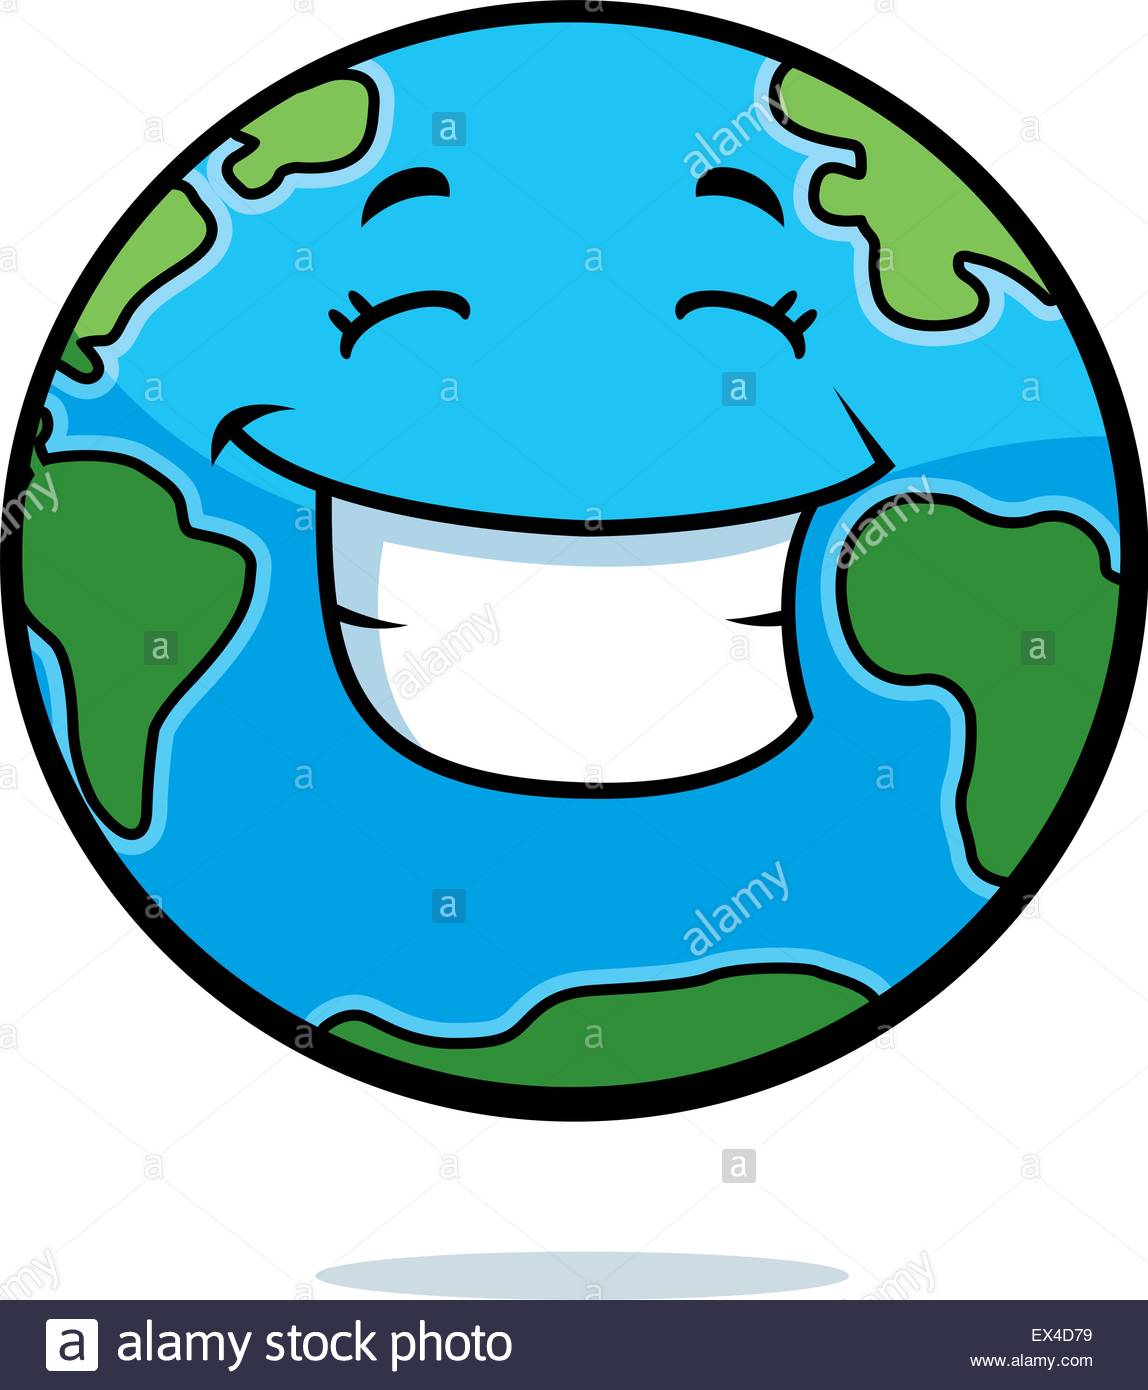 1148x1390 A Cartoon Planet Earth Happy And Smiling Stock Vector Art